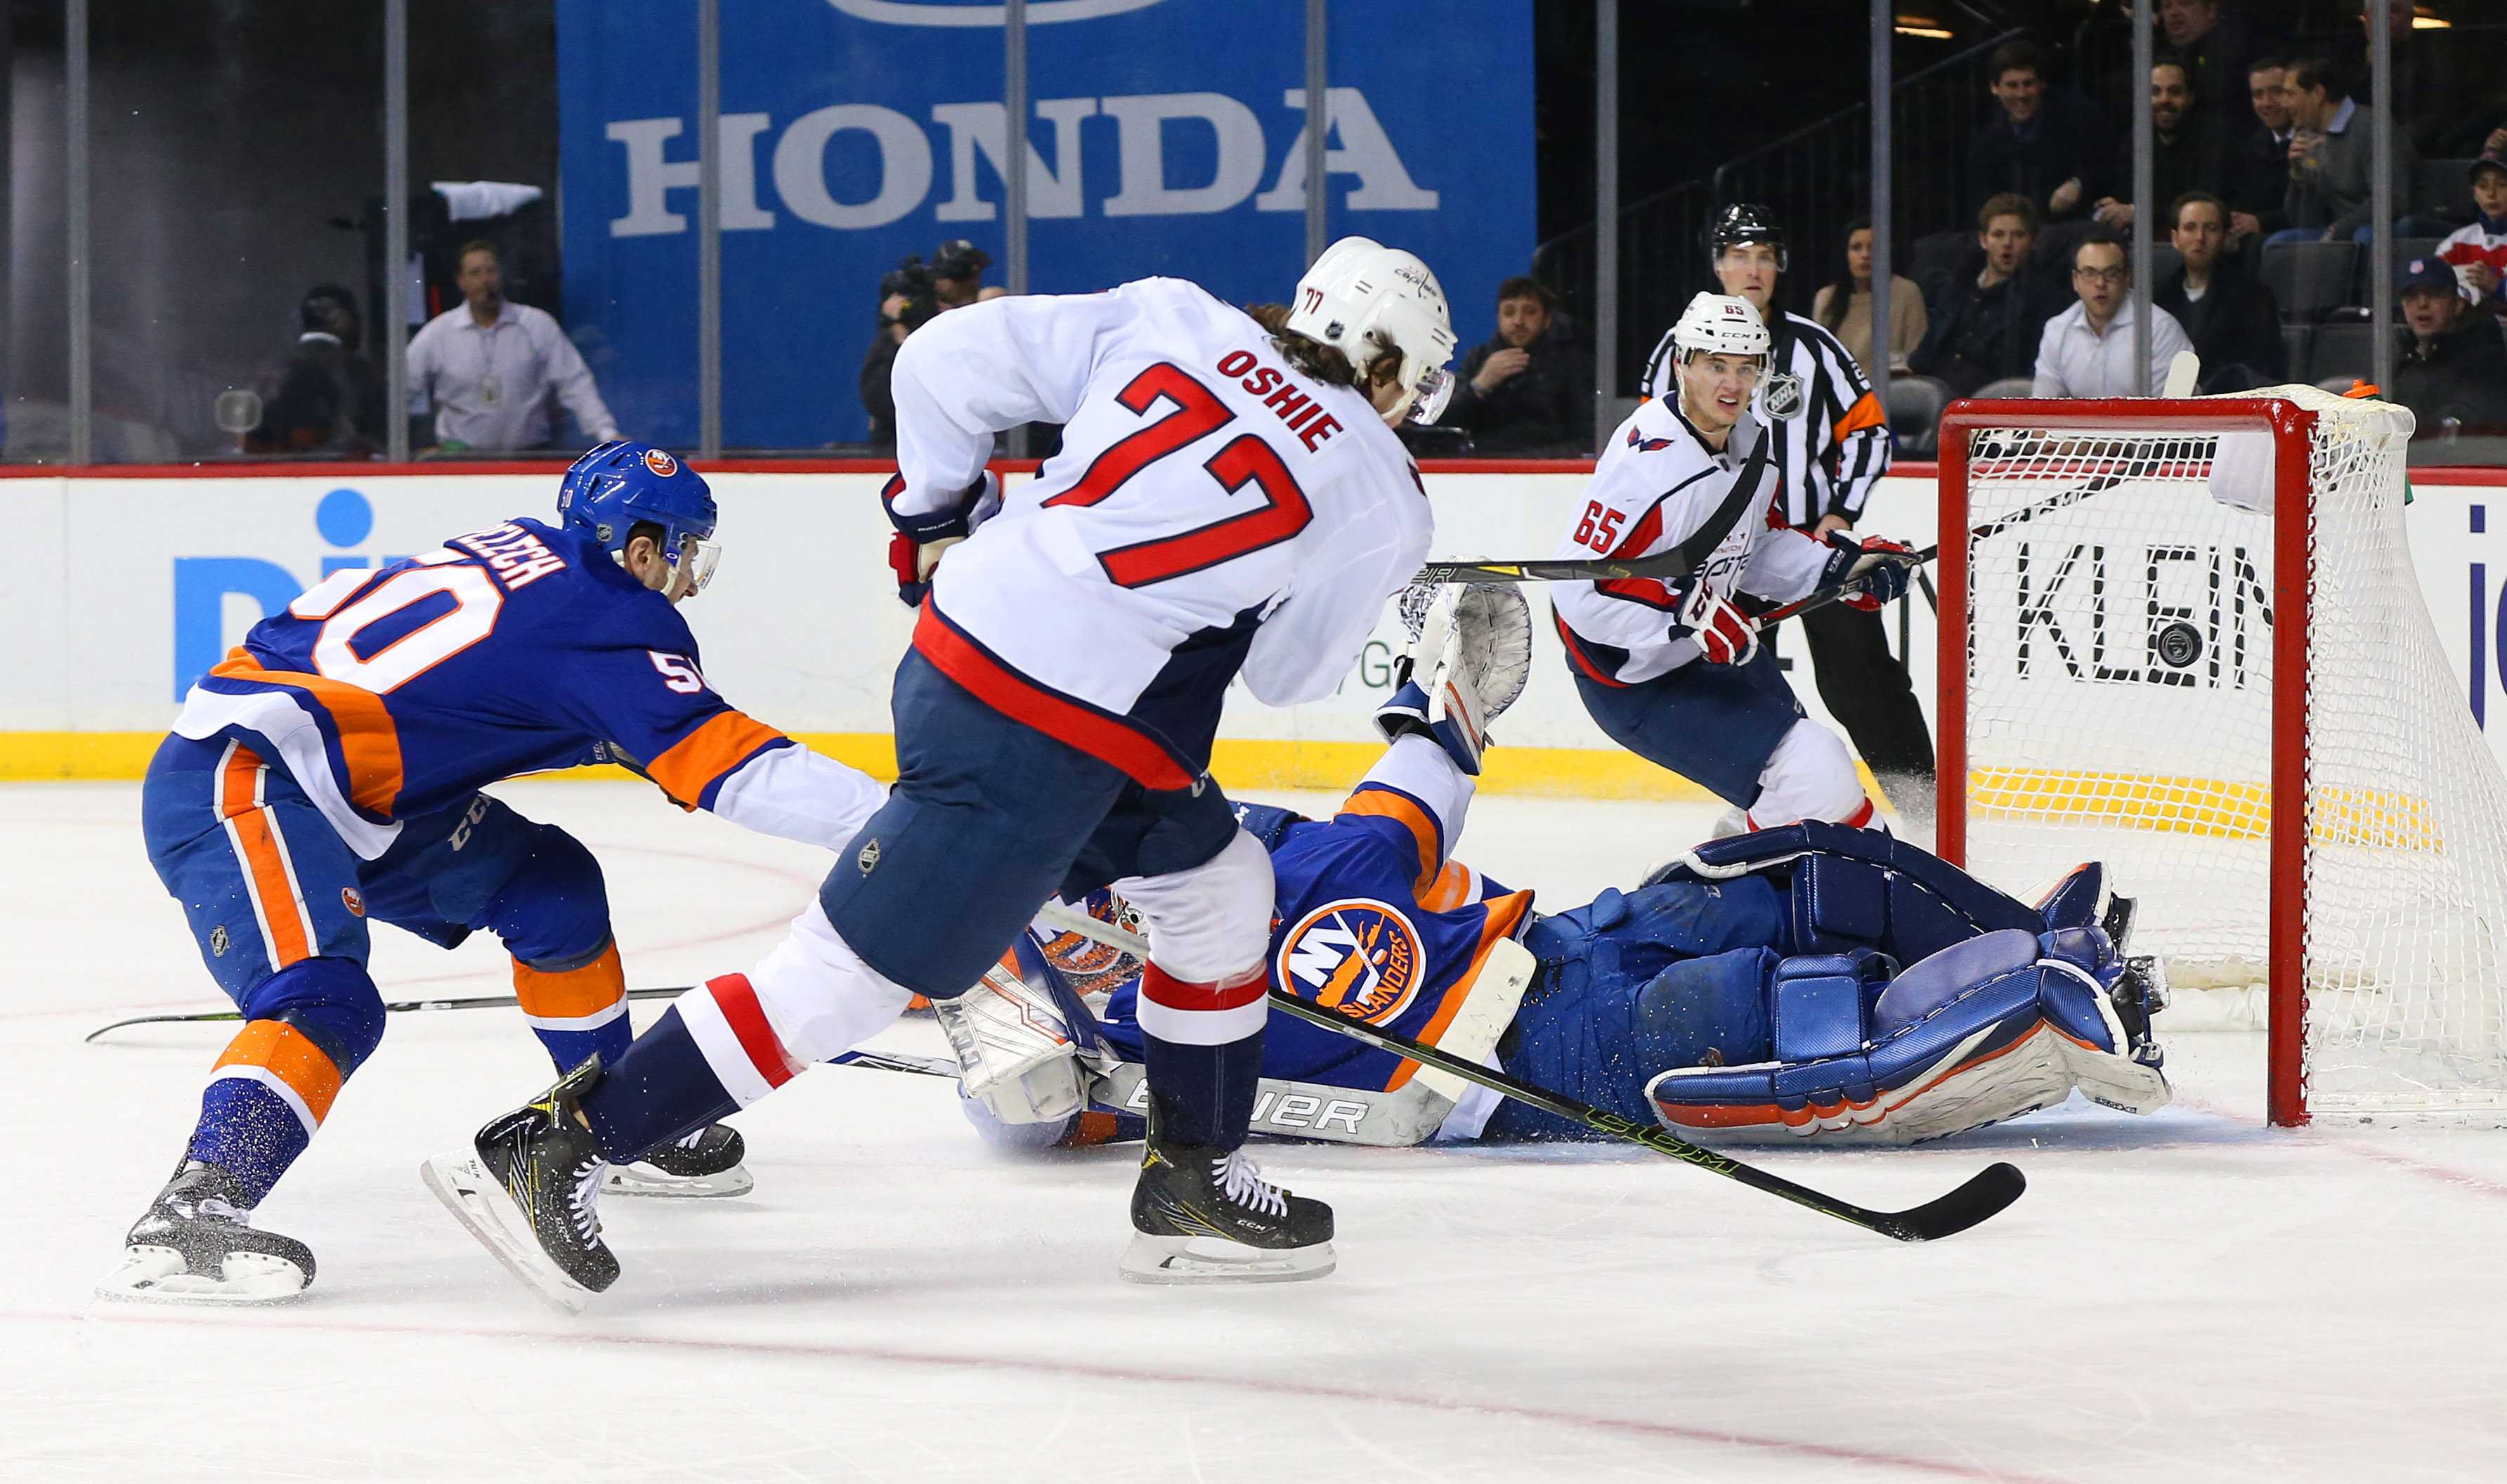 Mar 15, 2018; Brooklyn, NY, USA; Washington Capitals right wing T.J. Oshie (77) scores a goal a against the New York Islanders during the first period at Barclays Center. Mandatory Credit: Andy Marlin-USA TODAY Sports